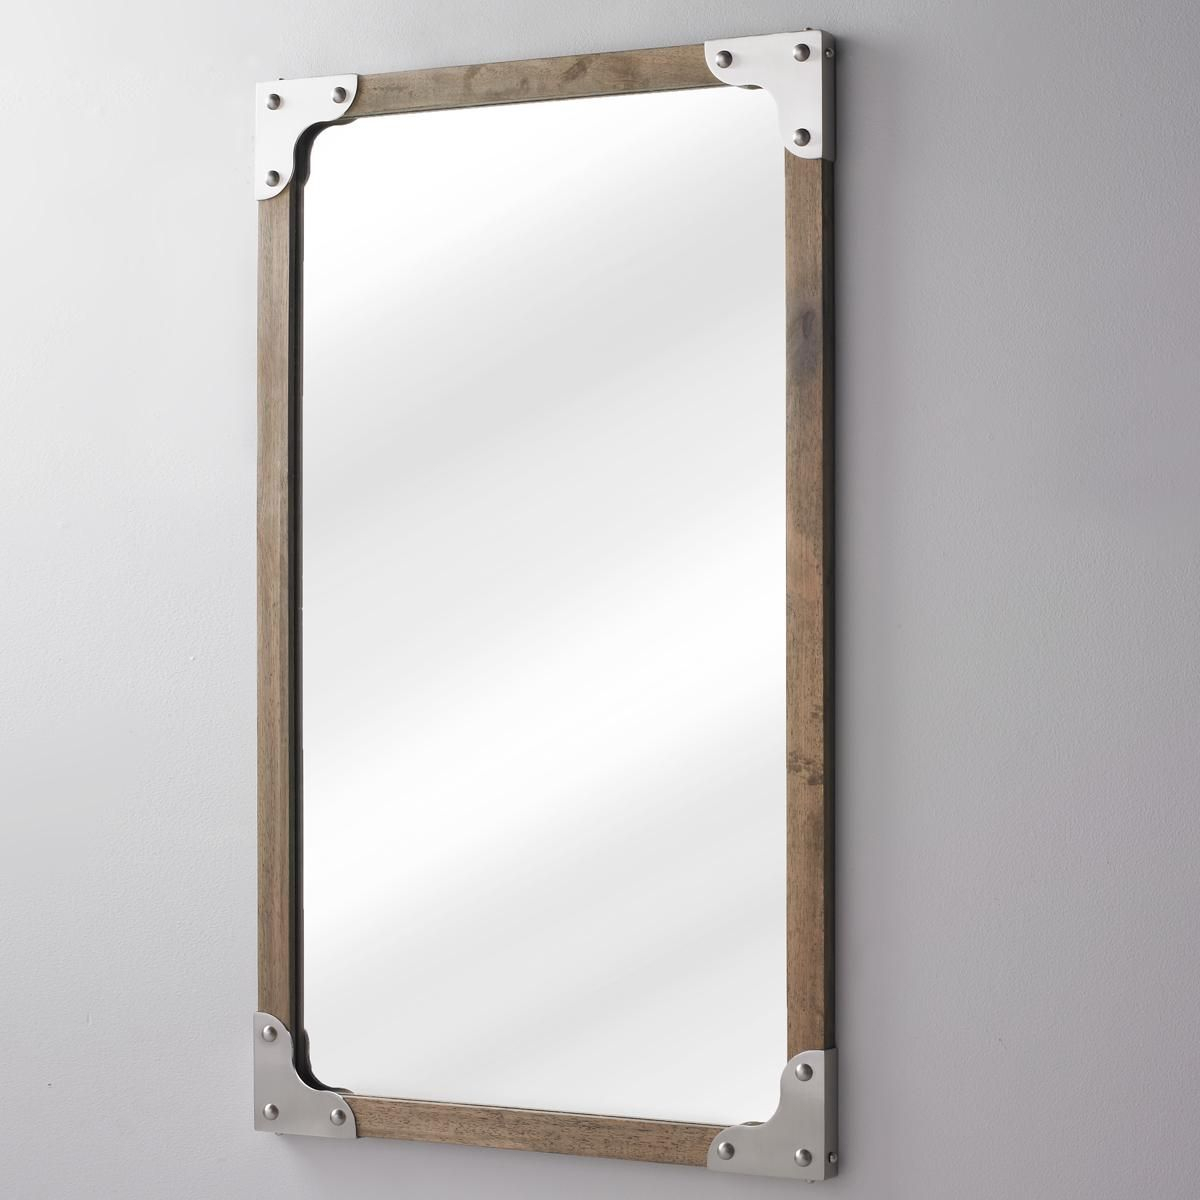 Rivet And Wood Industrial Style Mirror | Weathered Woods Throughout Koeller Industrial Metal Wall Mirrors (Gallery 6 of 30)